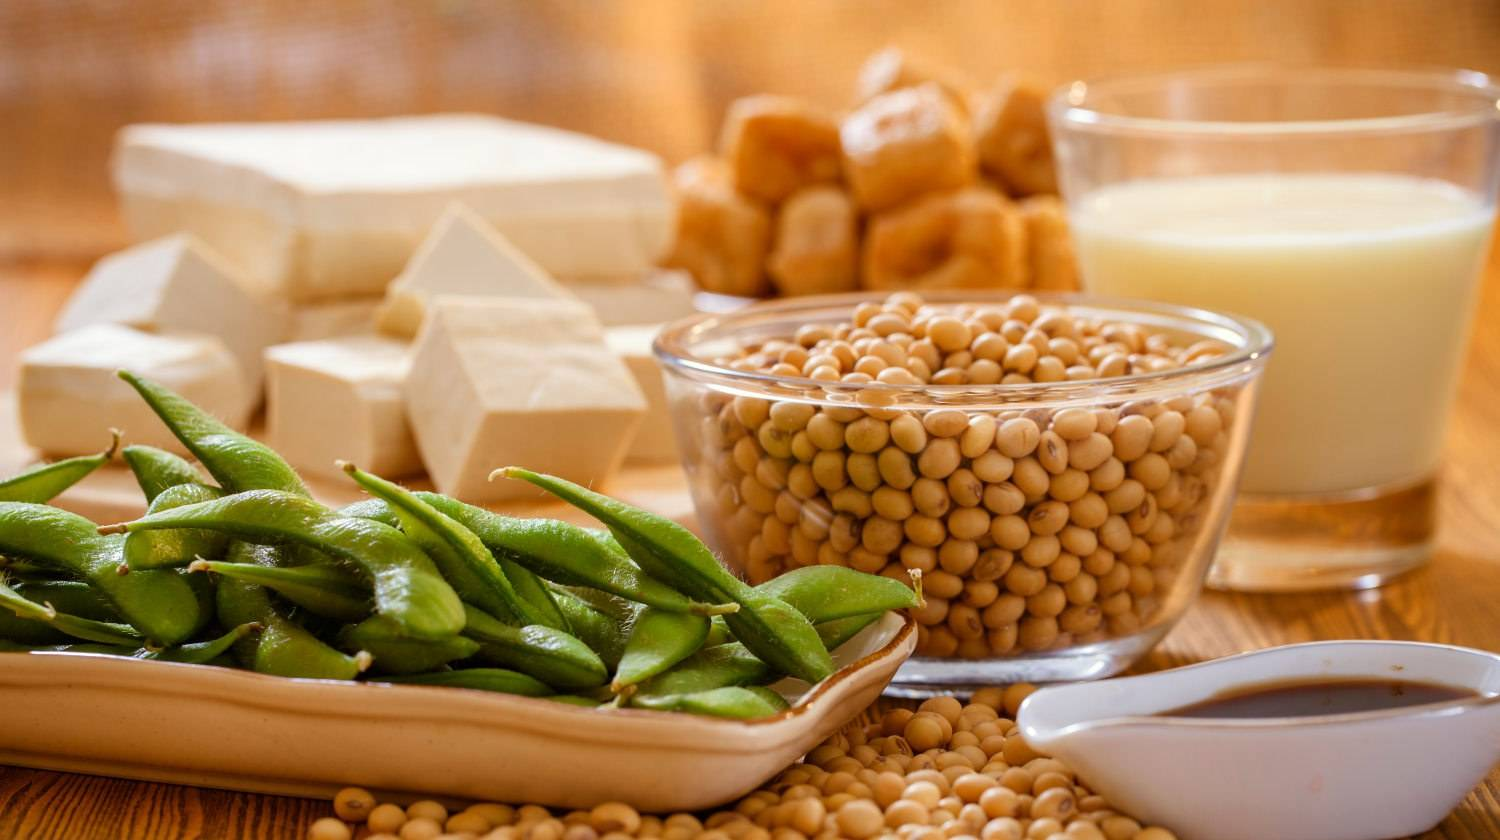 Featured | Soy bean, tofu and other soy products | Soy Lecithin Side Effects and Why You Should AVOID It